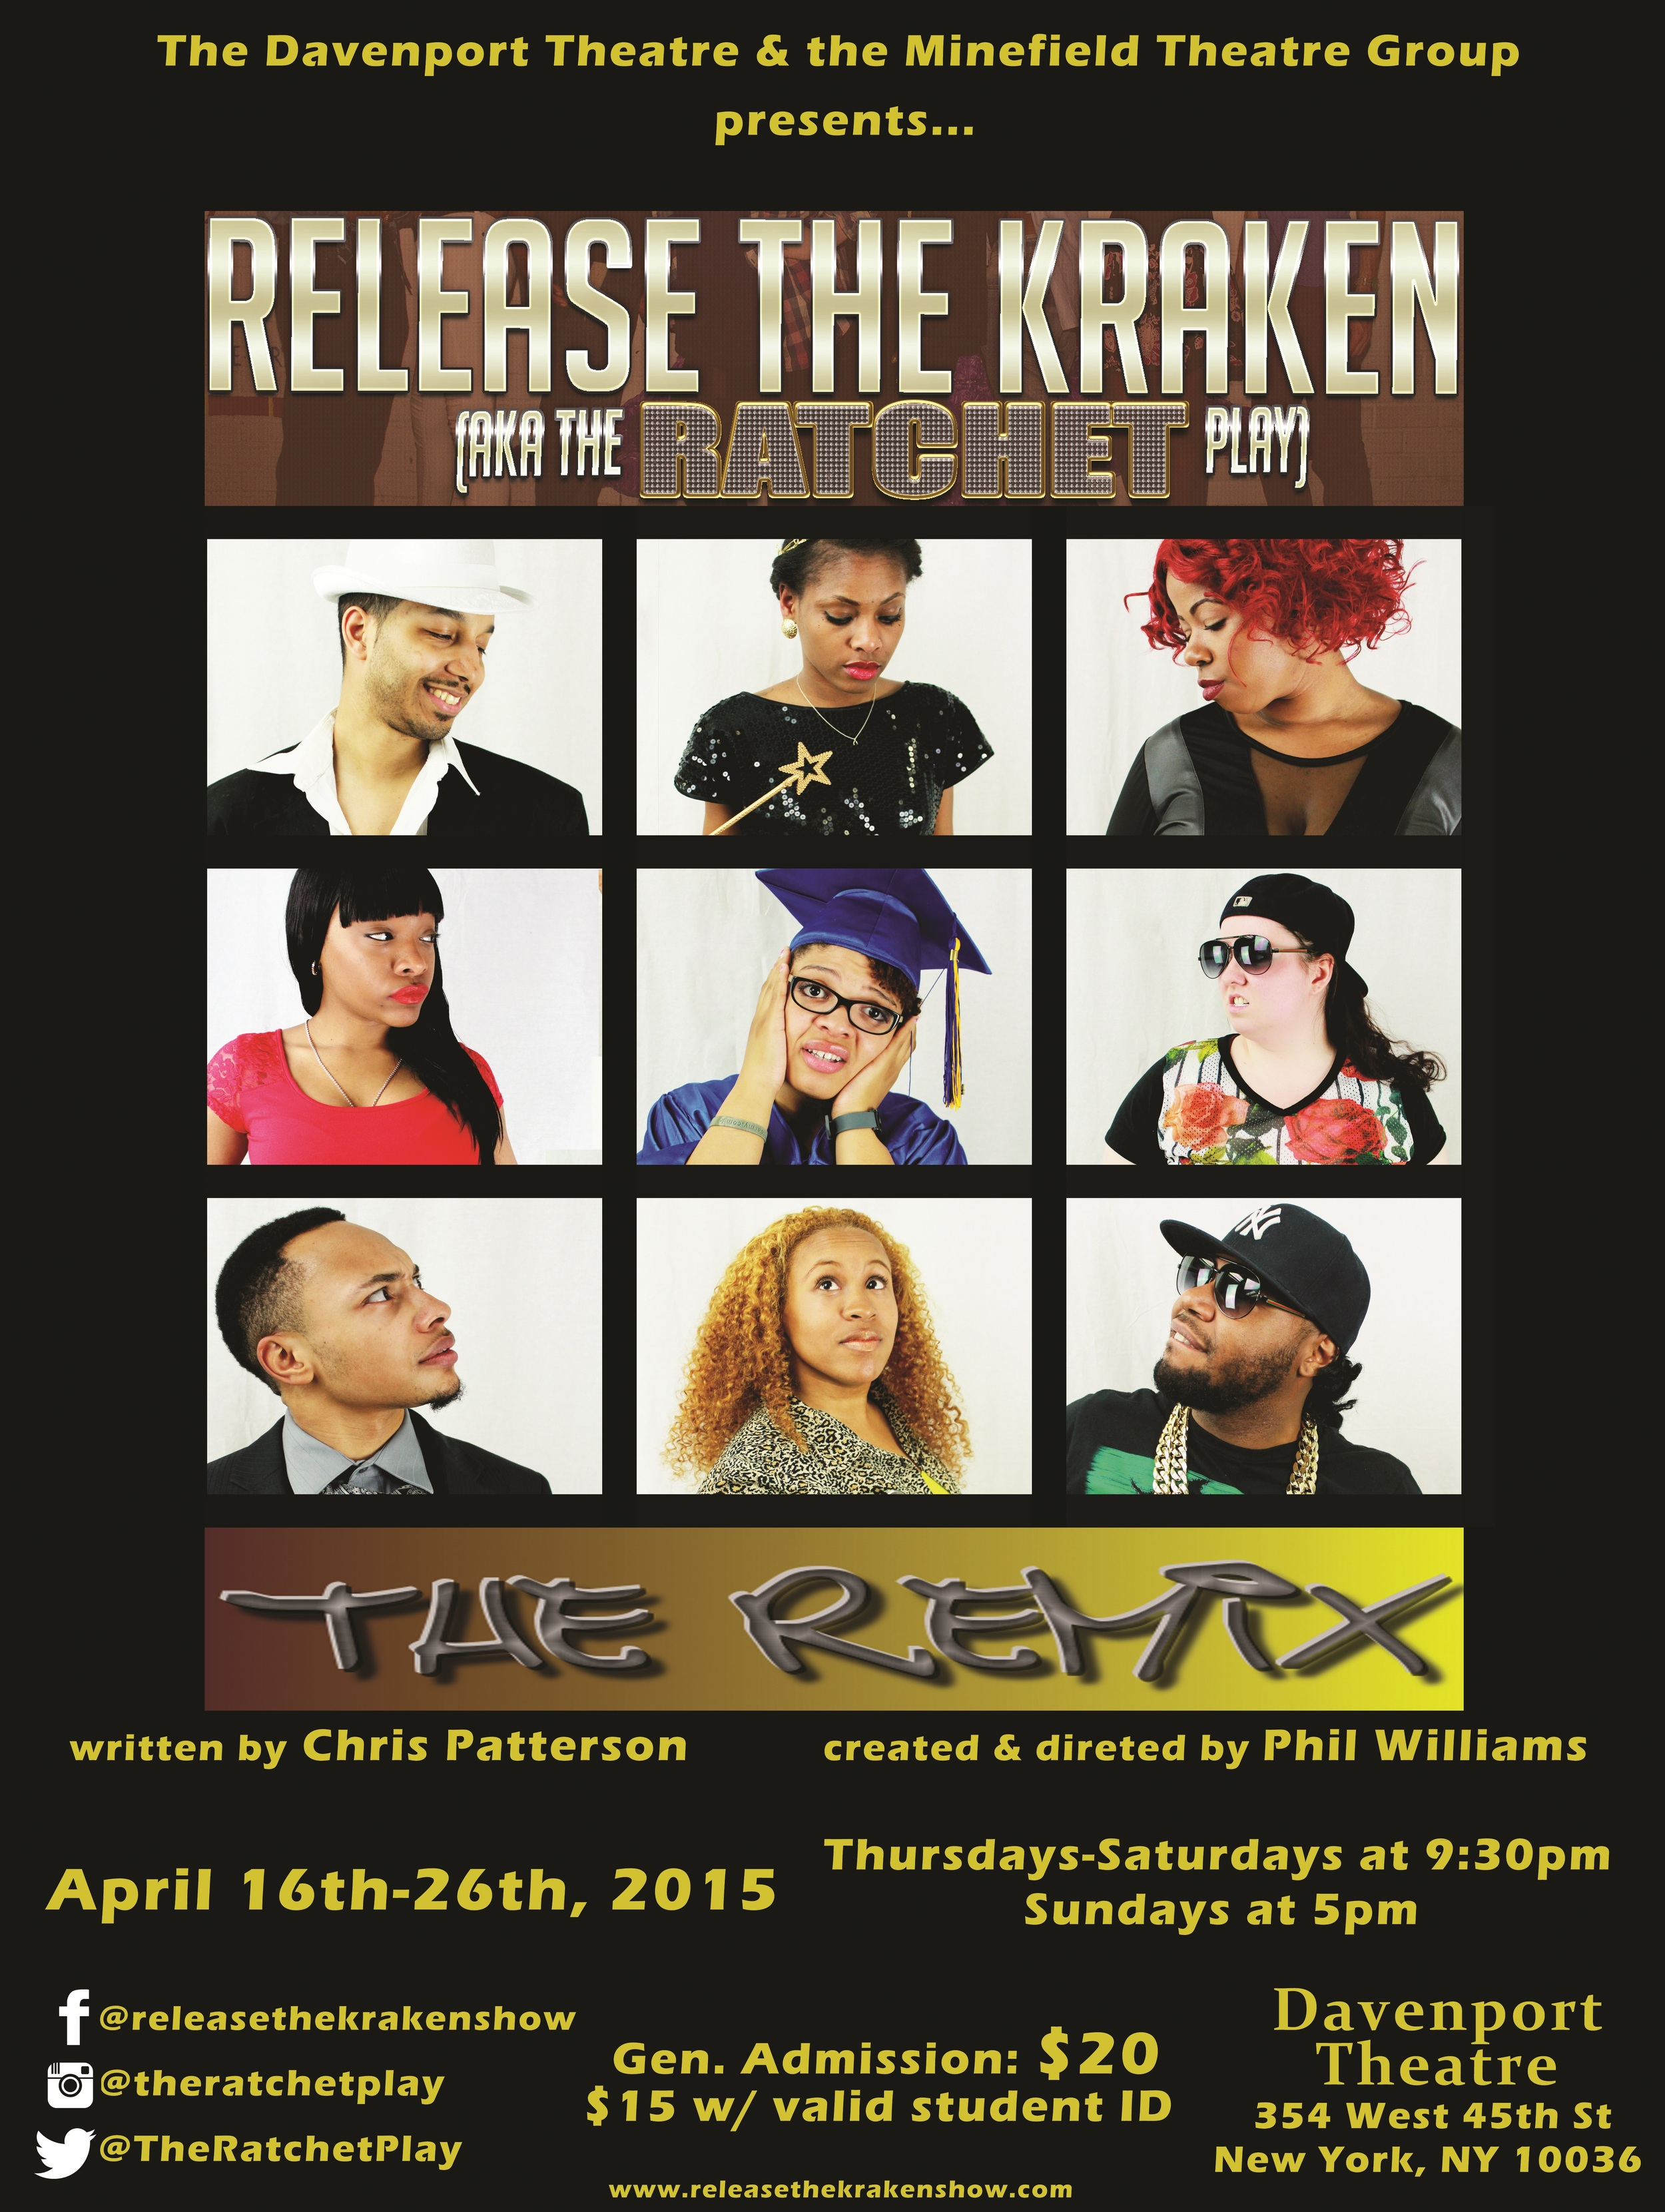 Release the Kraken! (aka The Ratchet Play) - The Remix